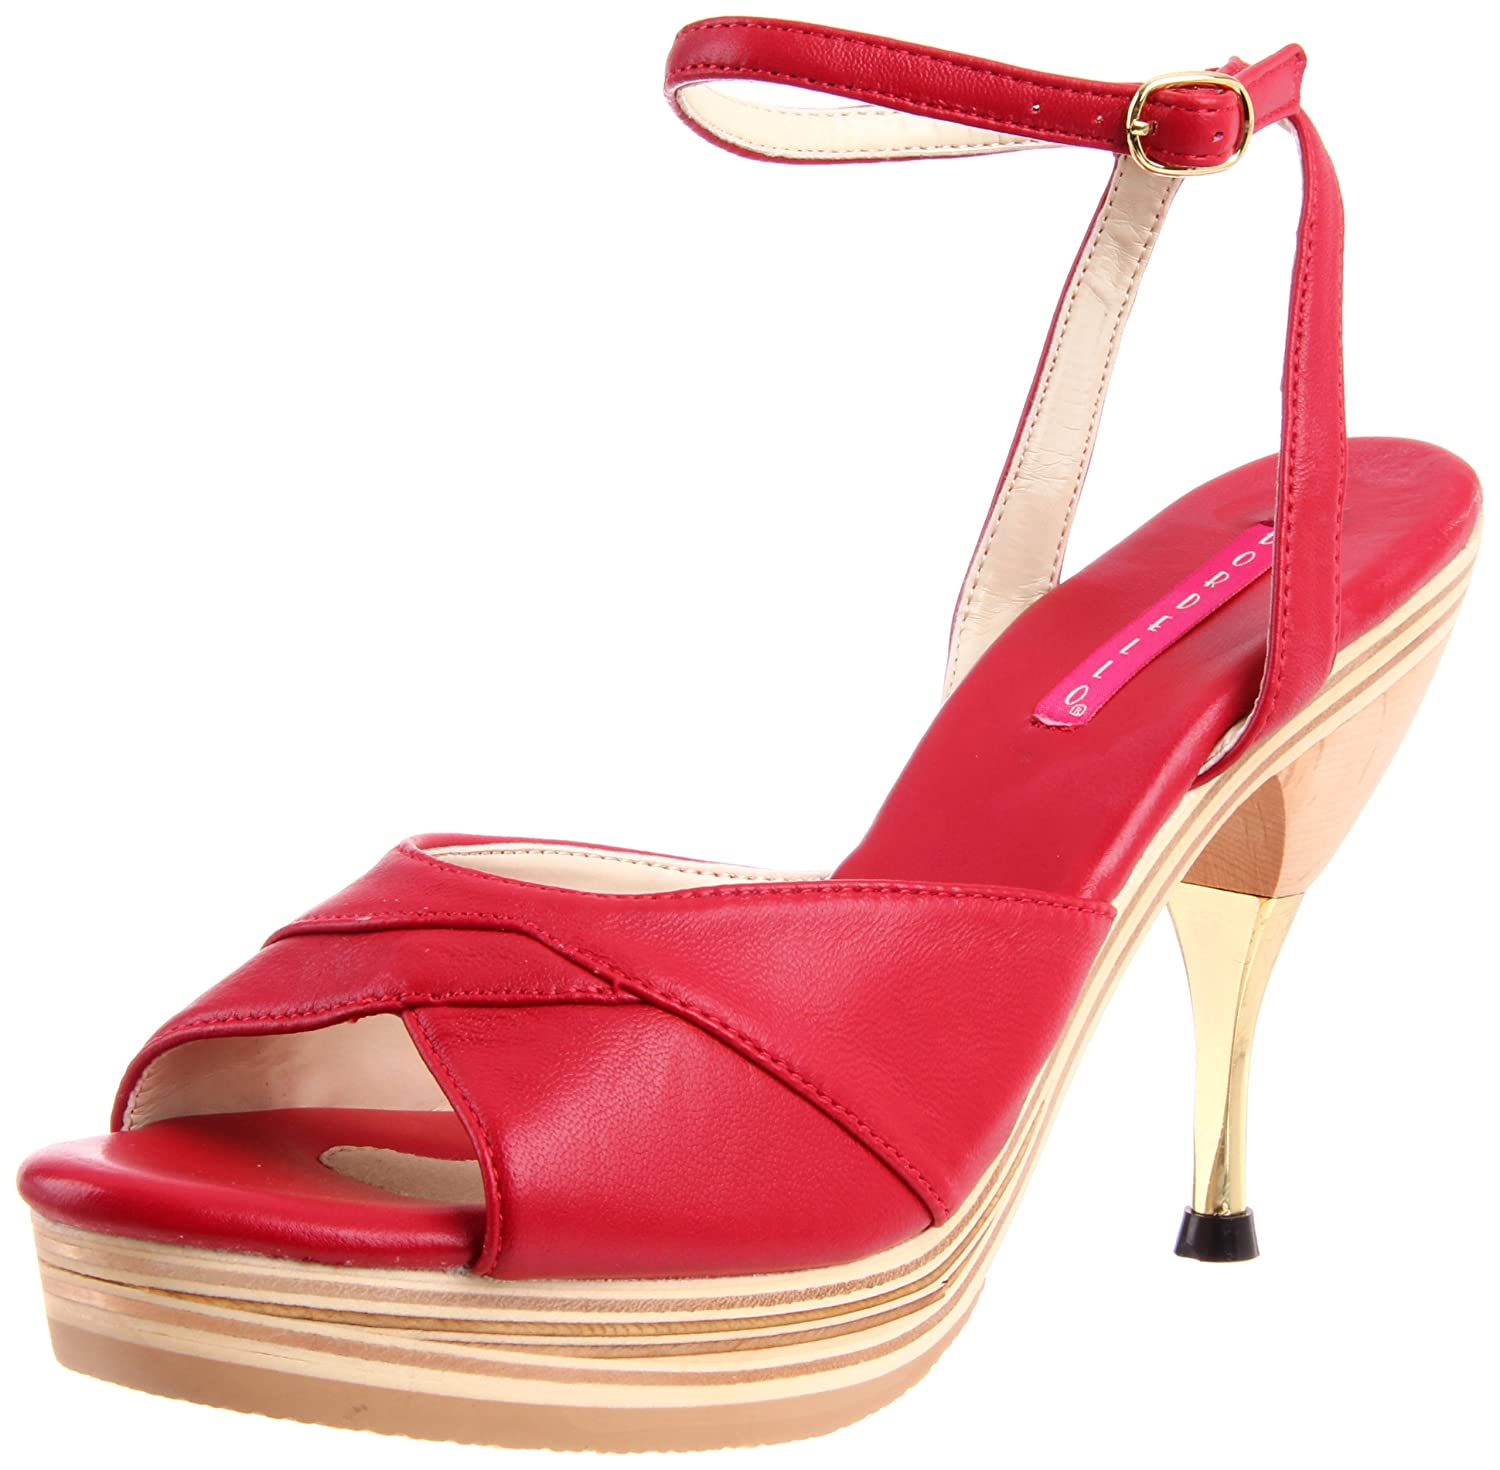 Bordello Bordello Bordello Sandalette GENIE-109LE - Rot 36 EU - 03584f